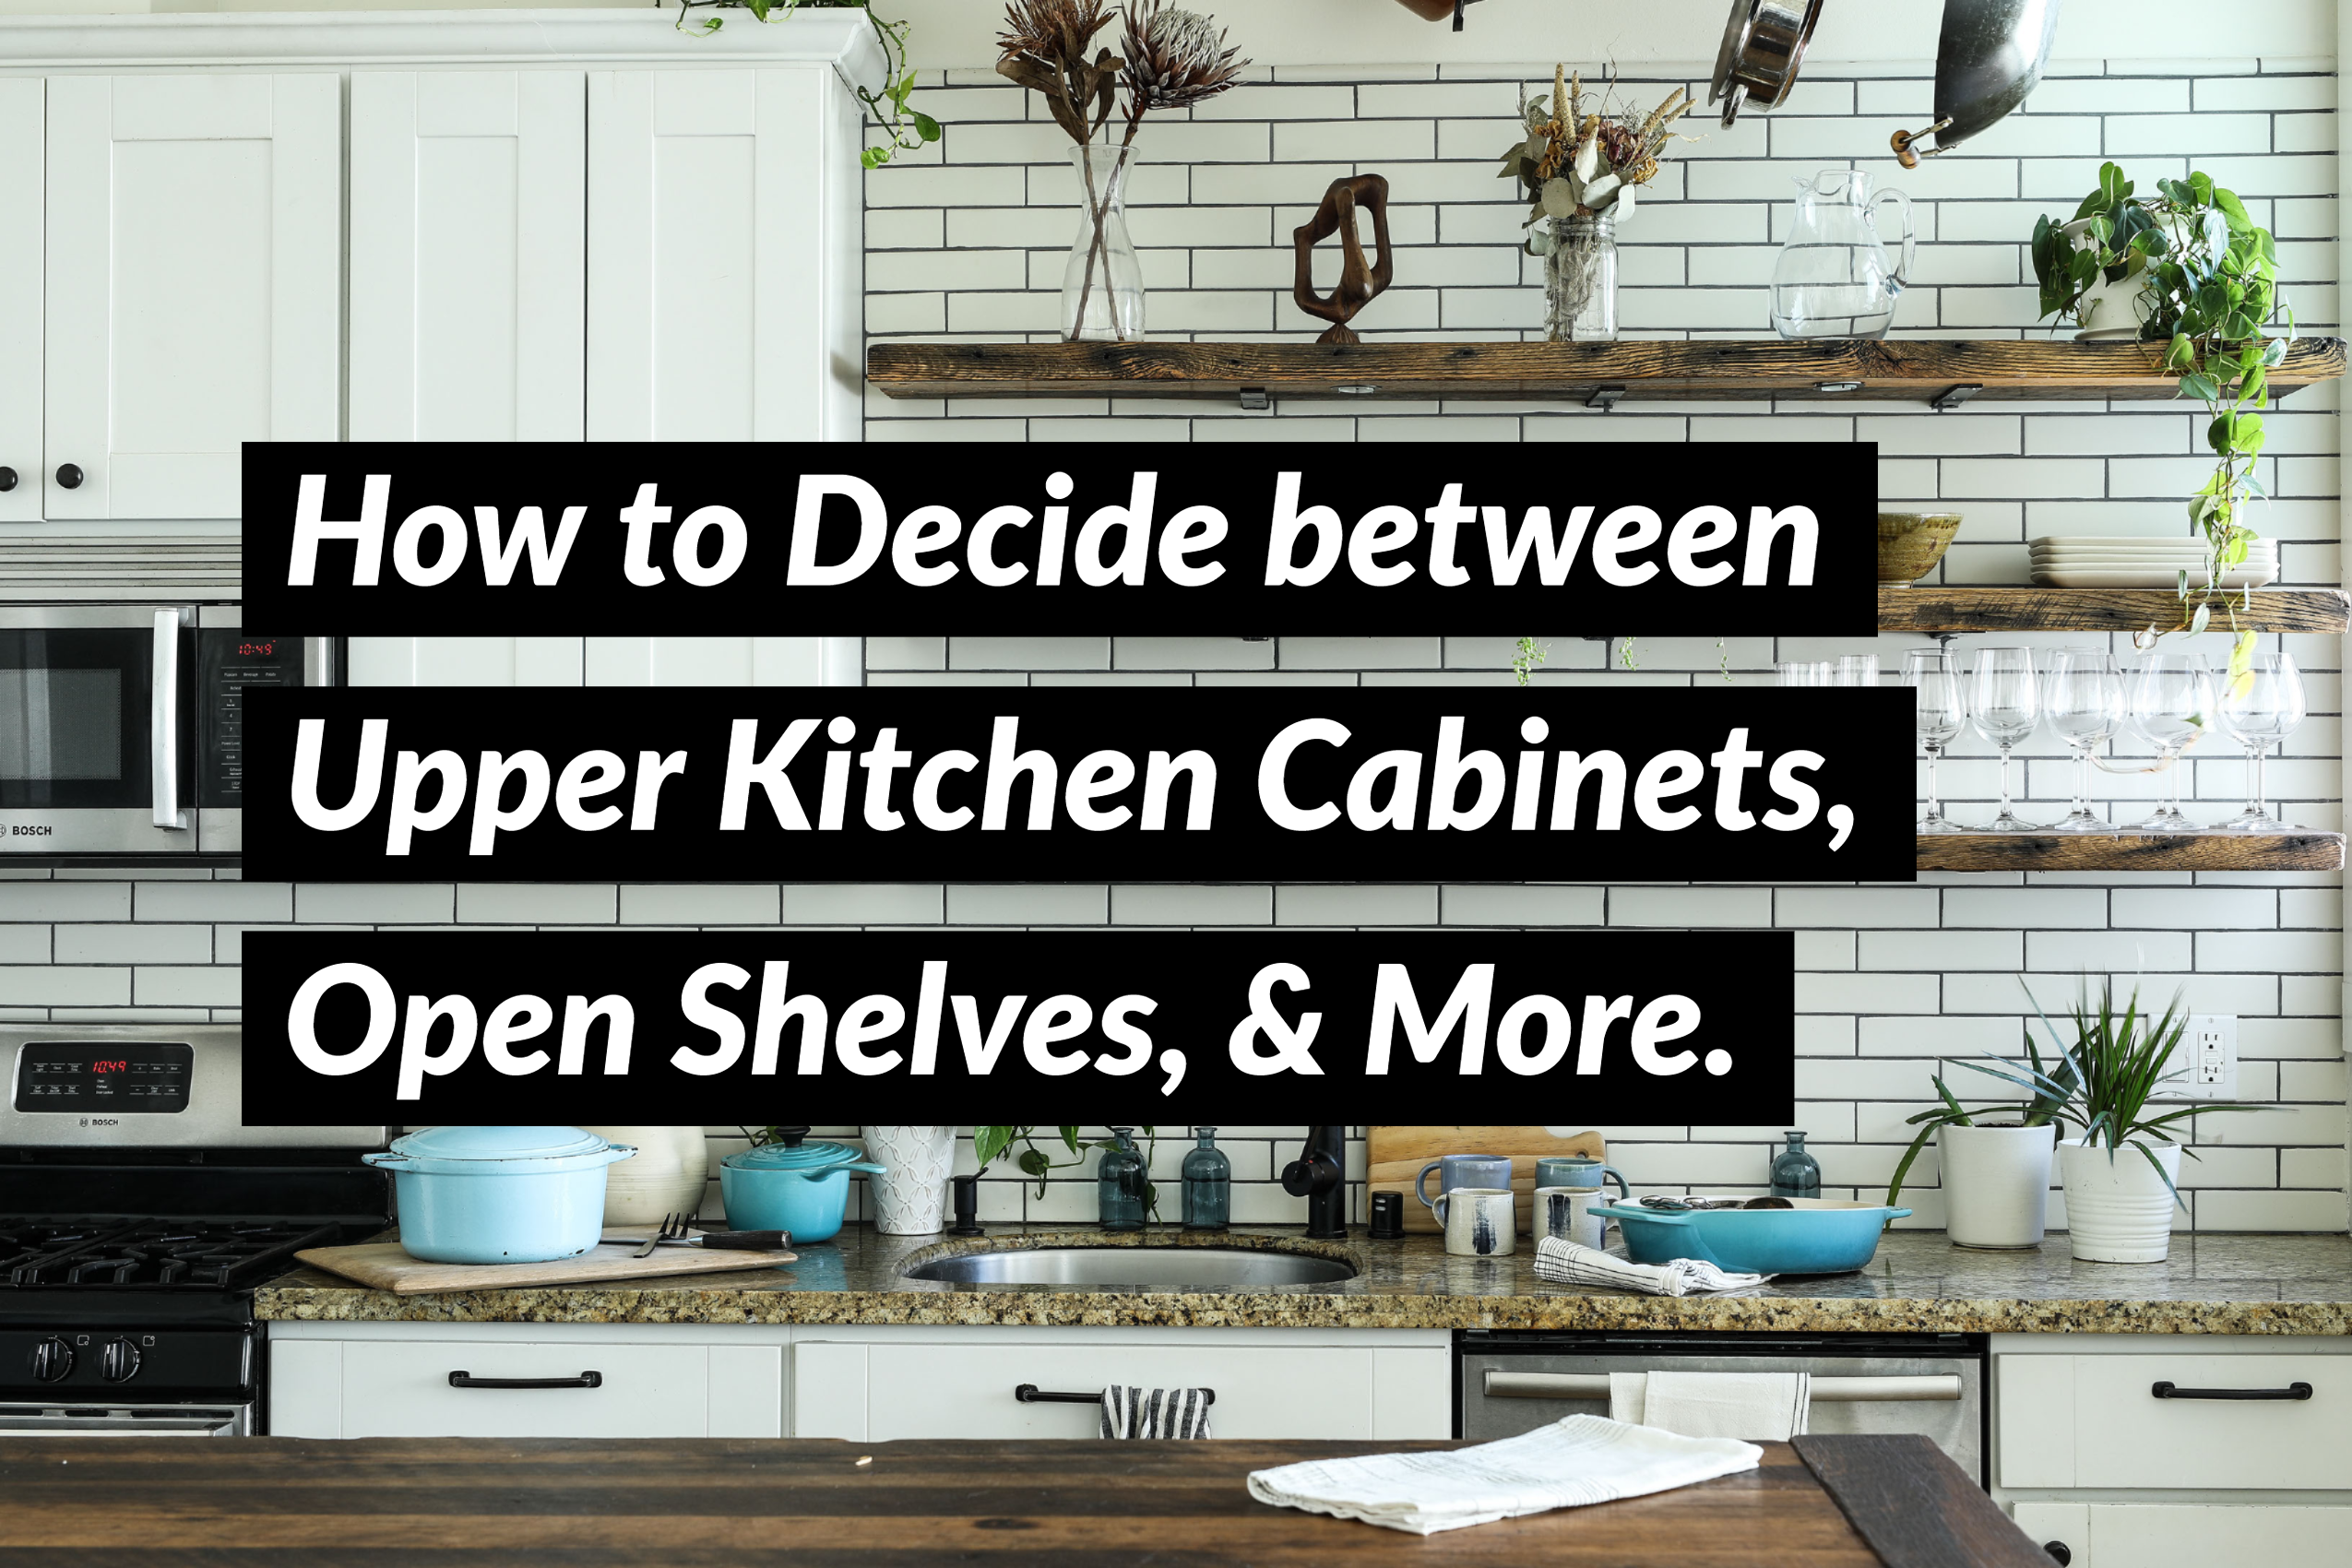 How to Decide between DIY Upper Kitchen Cabinets, Open Shelves, and More.